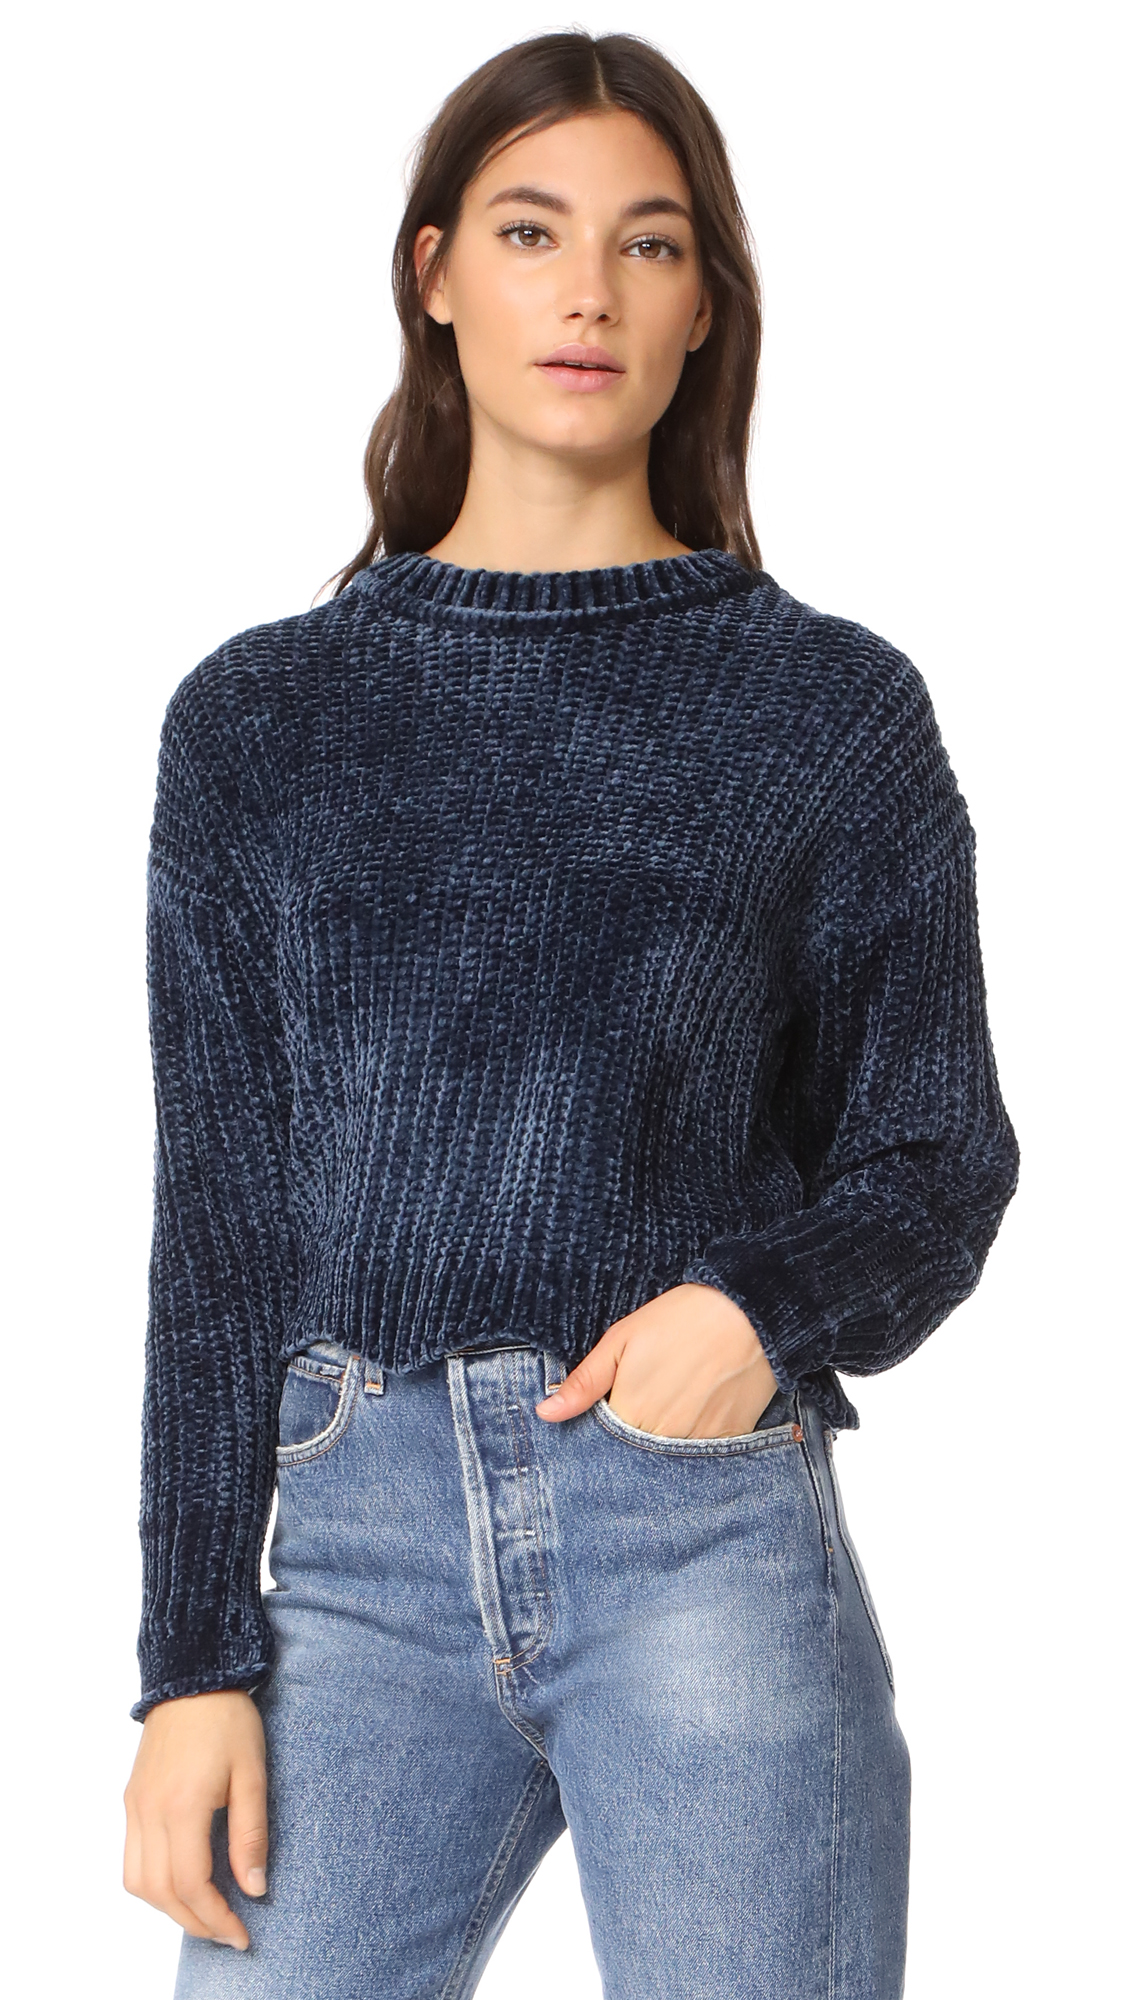 ENGLISH FACTORY Scallop Hem Knit Sweater - Dark Navy